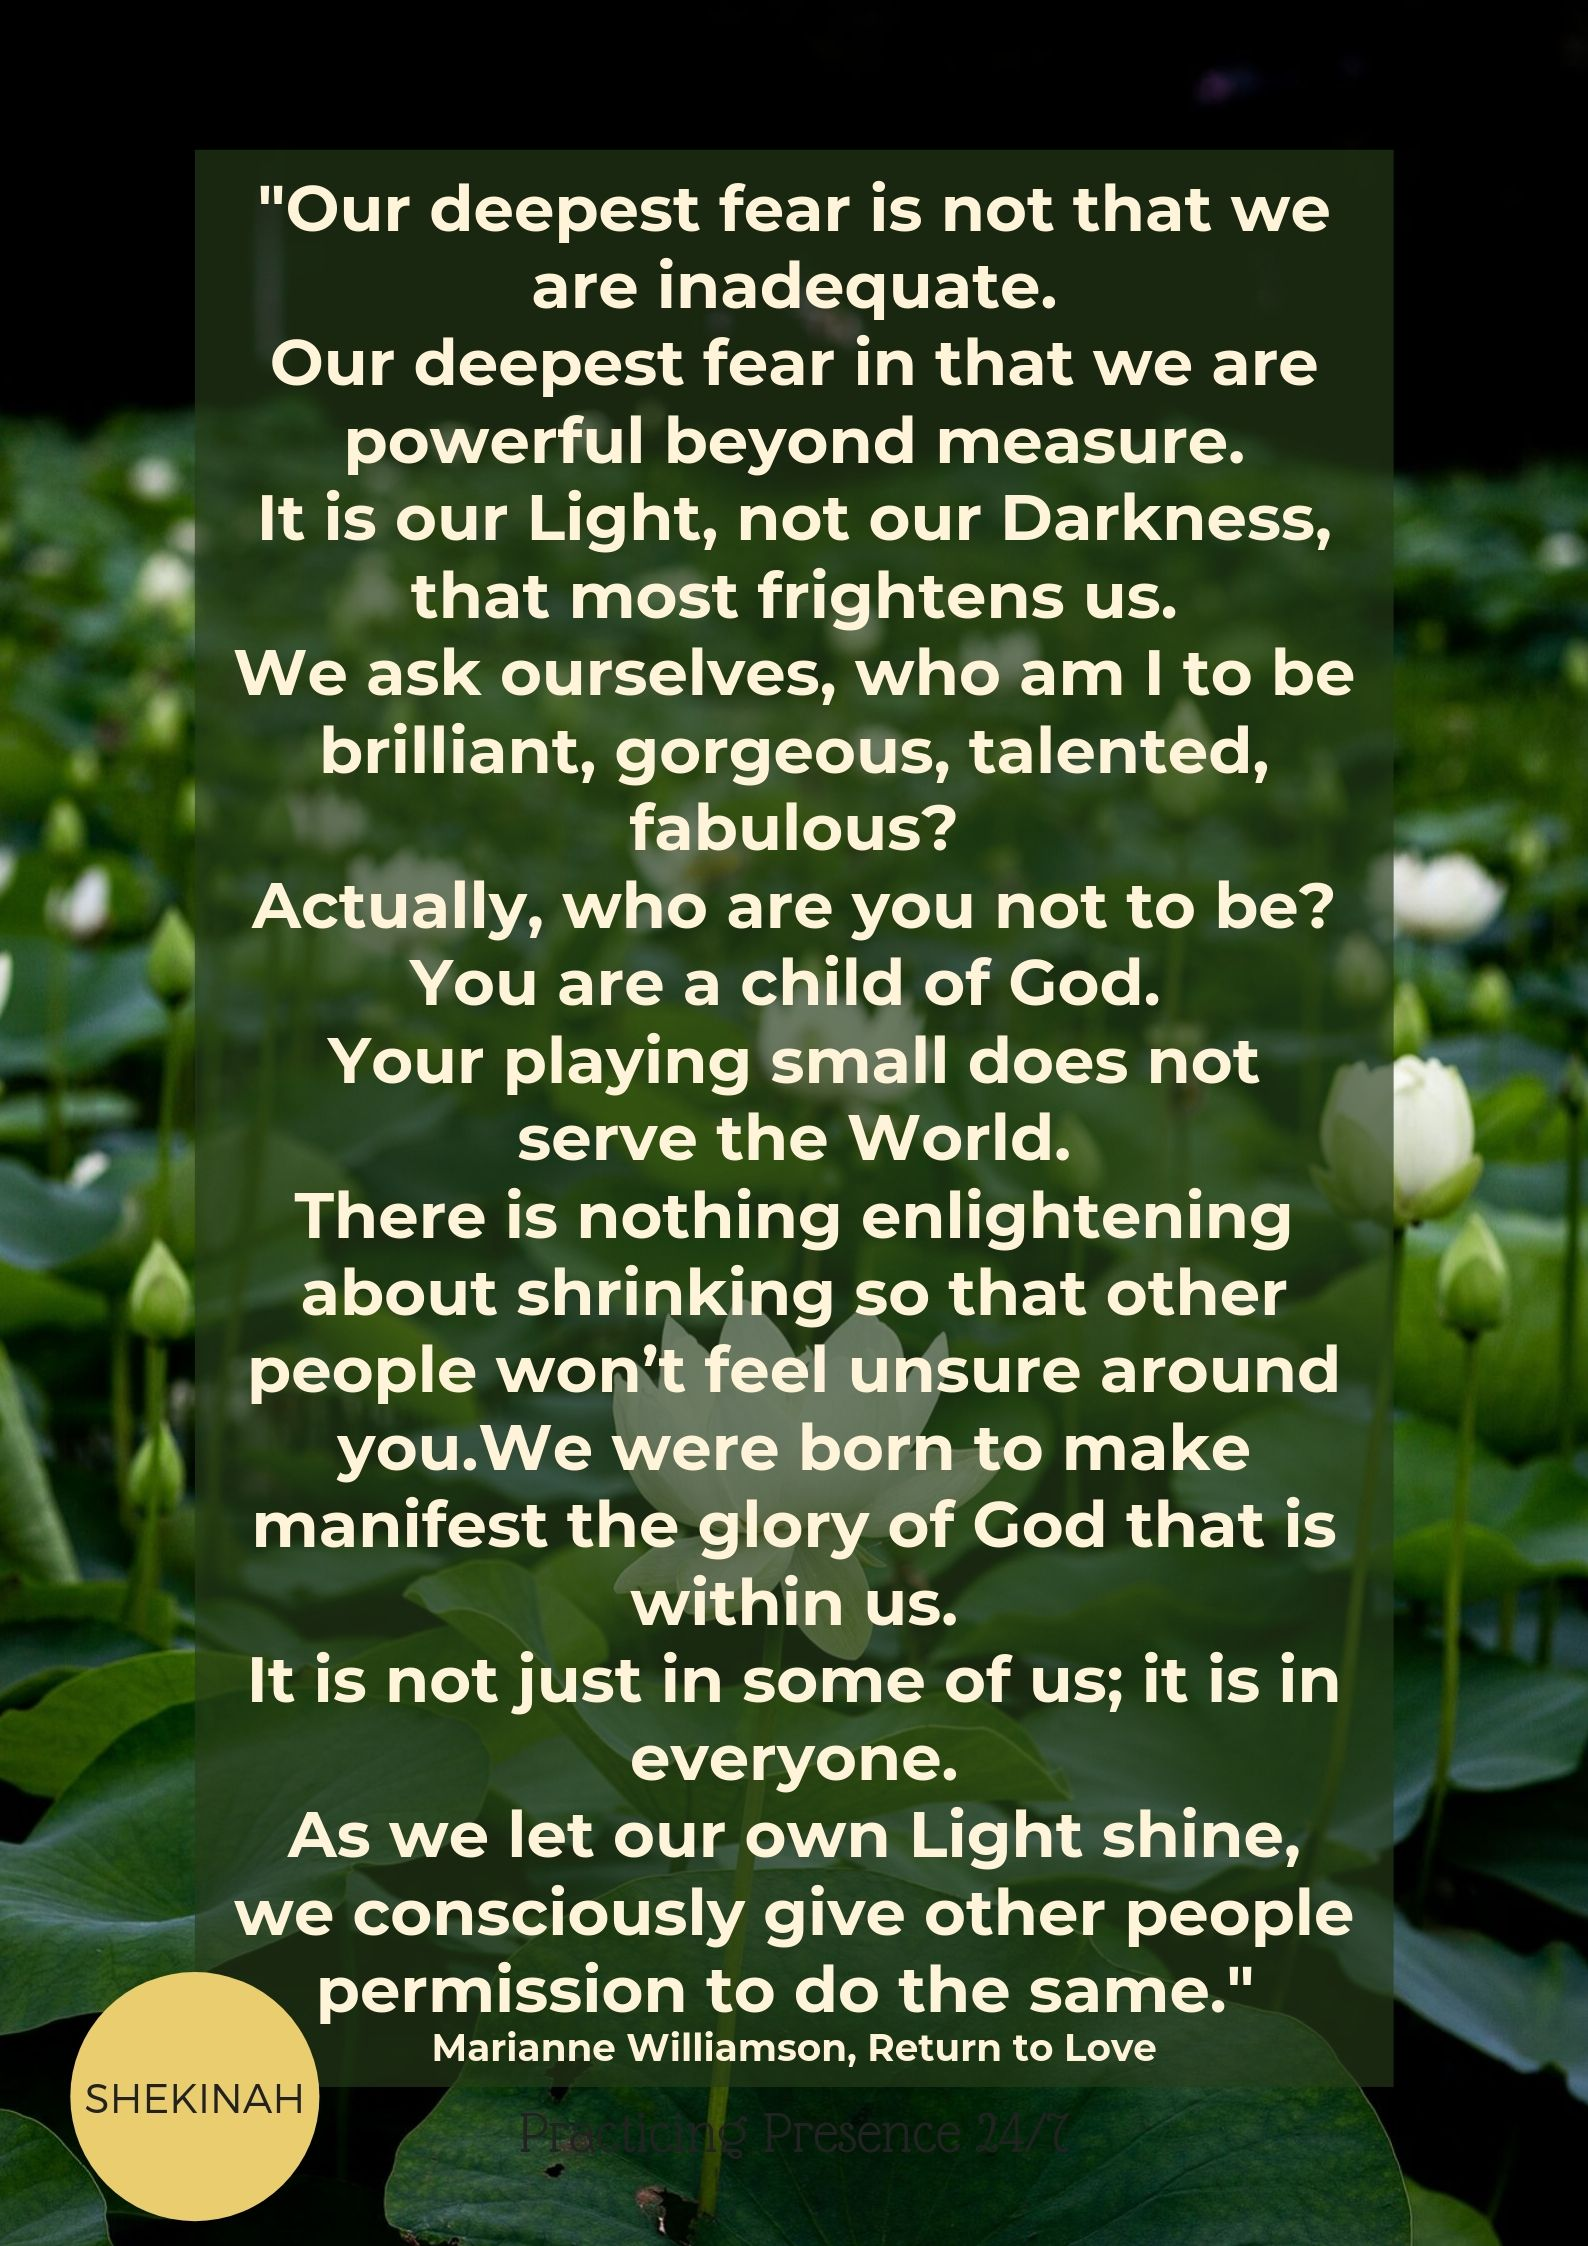 """Our deepest fear is not that we are inadequate. Our deepest fear in that we are powerful beyond measure. It is our Light, not our Darkness, that most frightens us. We ask ourselves, who am I to be brilliant, gorgeous, talented, fabulous? Actually, who are you not to be? You are a child of God. Your playing small does not serve the World. There is nothing enlightening about shrinking so that other people won't feel unsure around you.We were born to make manifest the glory of God that is within us. It is not just in some of us; it is in everyone. As we let our own Light shine, we consciously give other people permission to do the same."" Marianne Williamson, Return to Love"